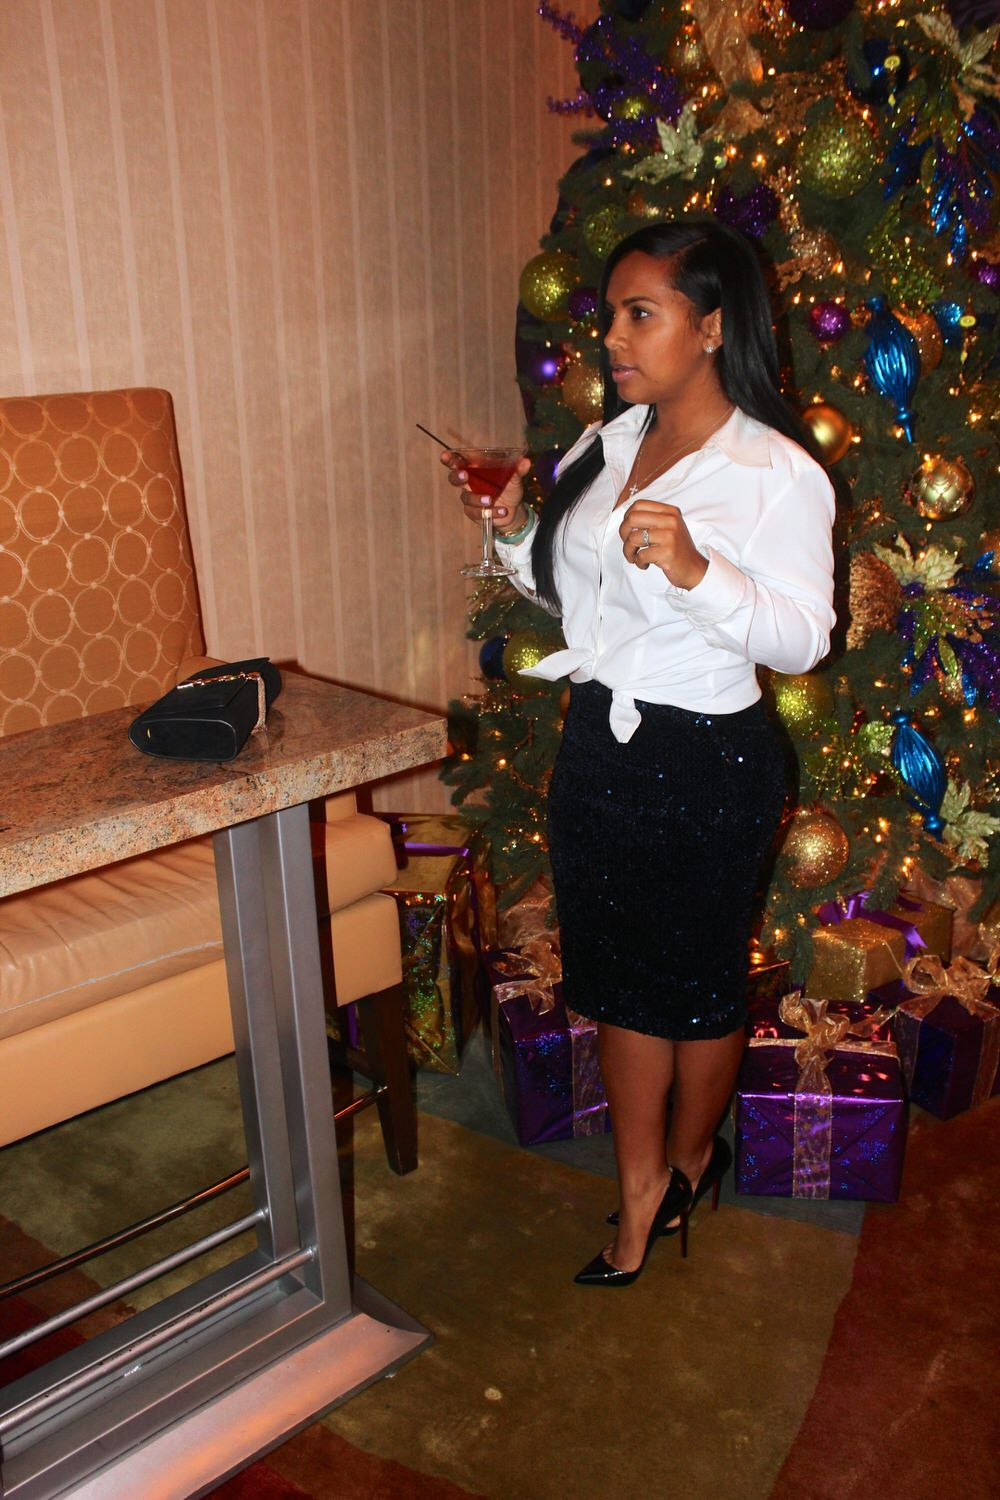 Holiday Attire - Sequin Pencil skirt, Vintage white mens button down shirt, Christian Louboutin pumps, YSL Clutch